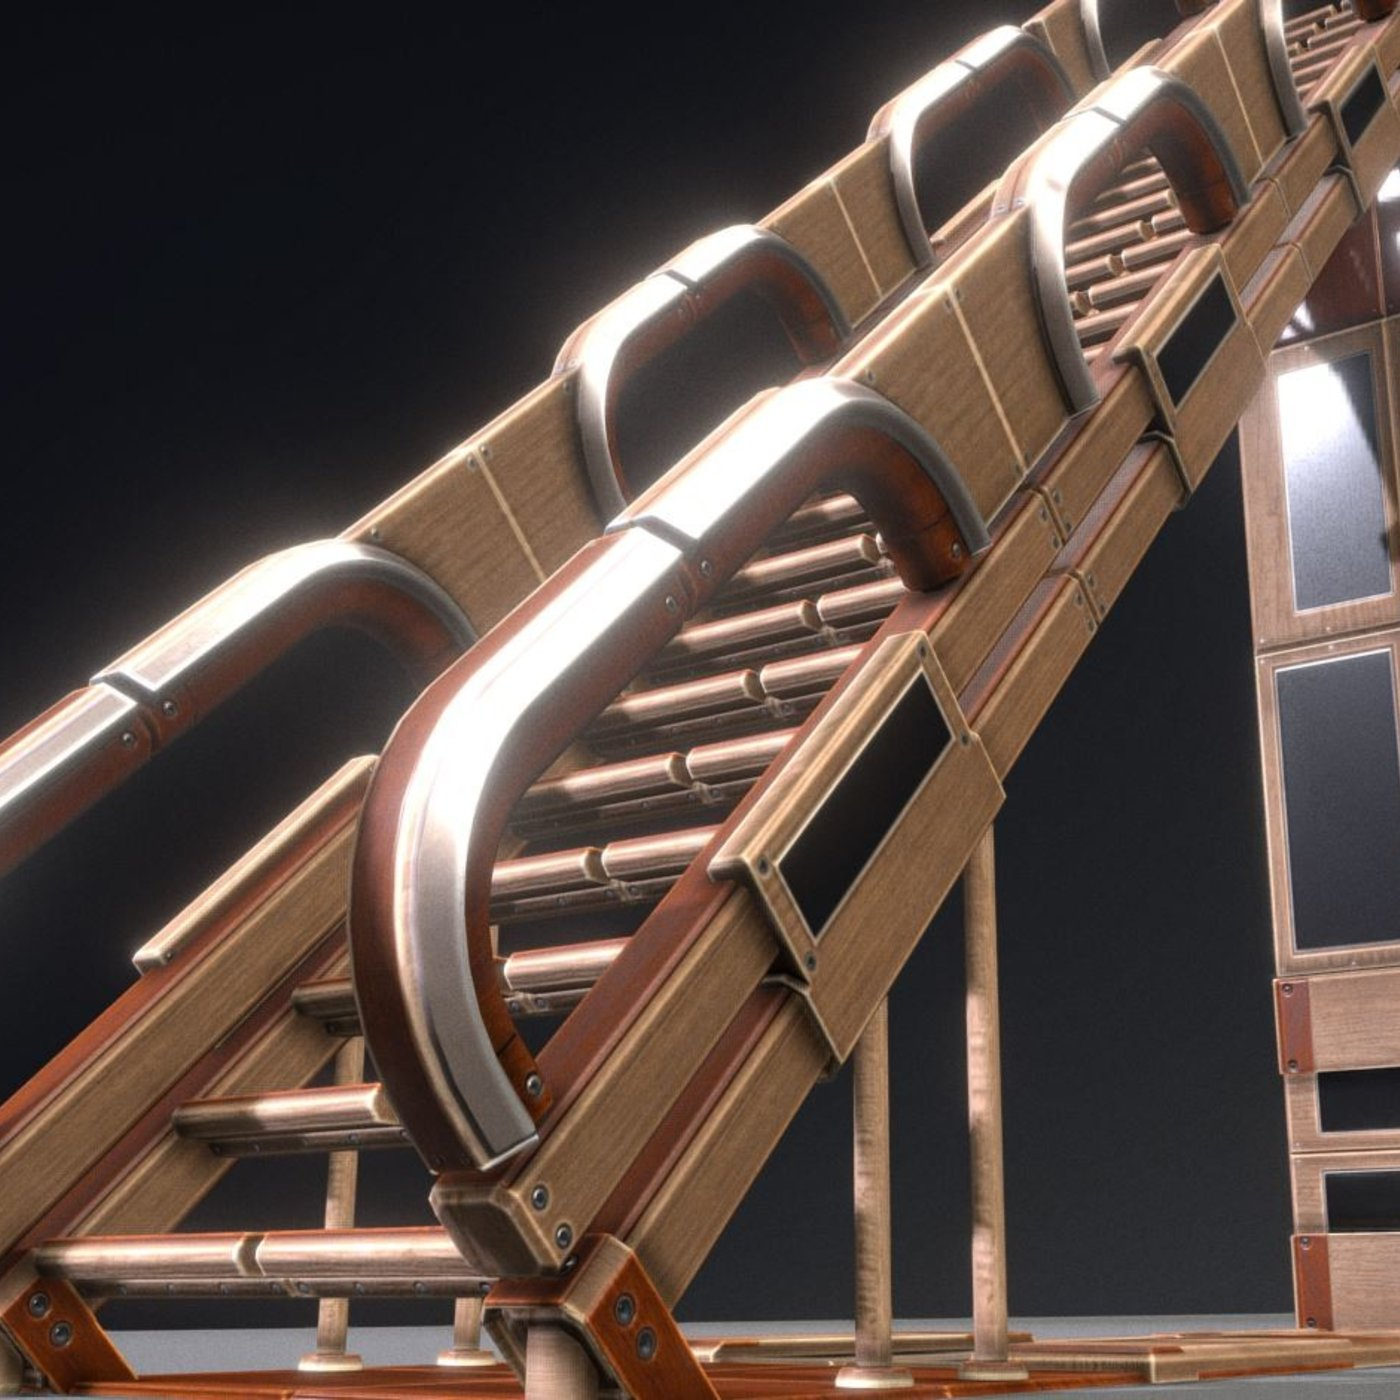 Modular Wood Ladders and Stairs